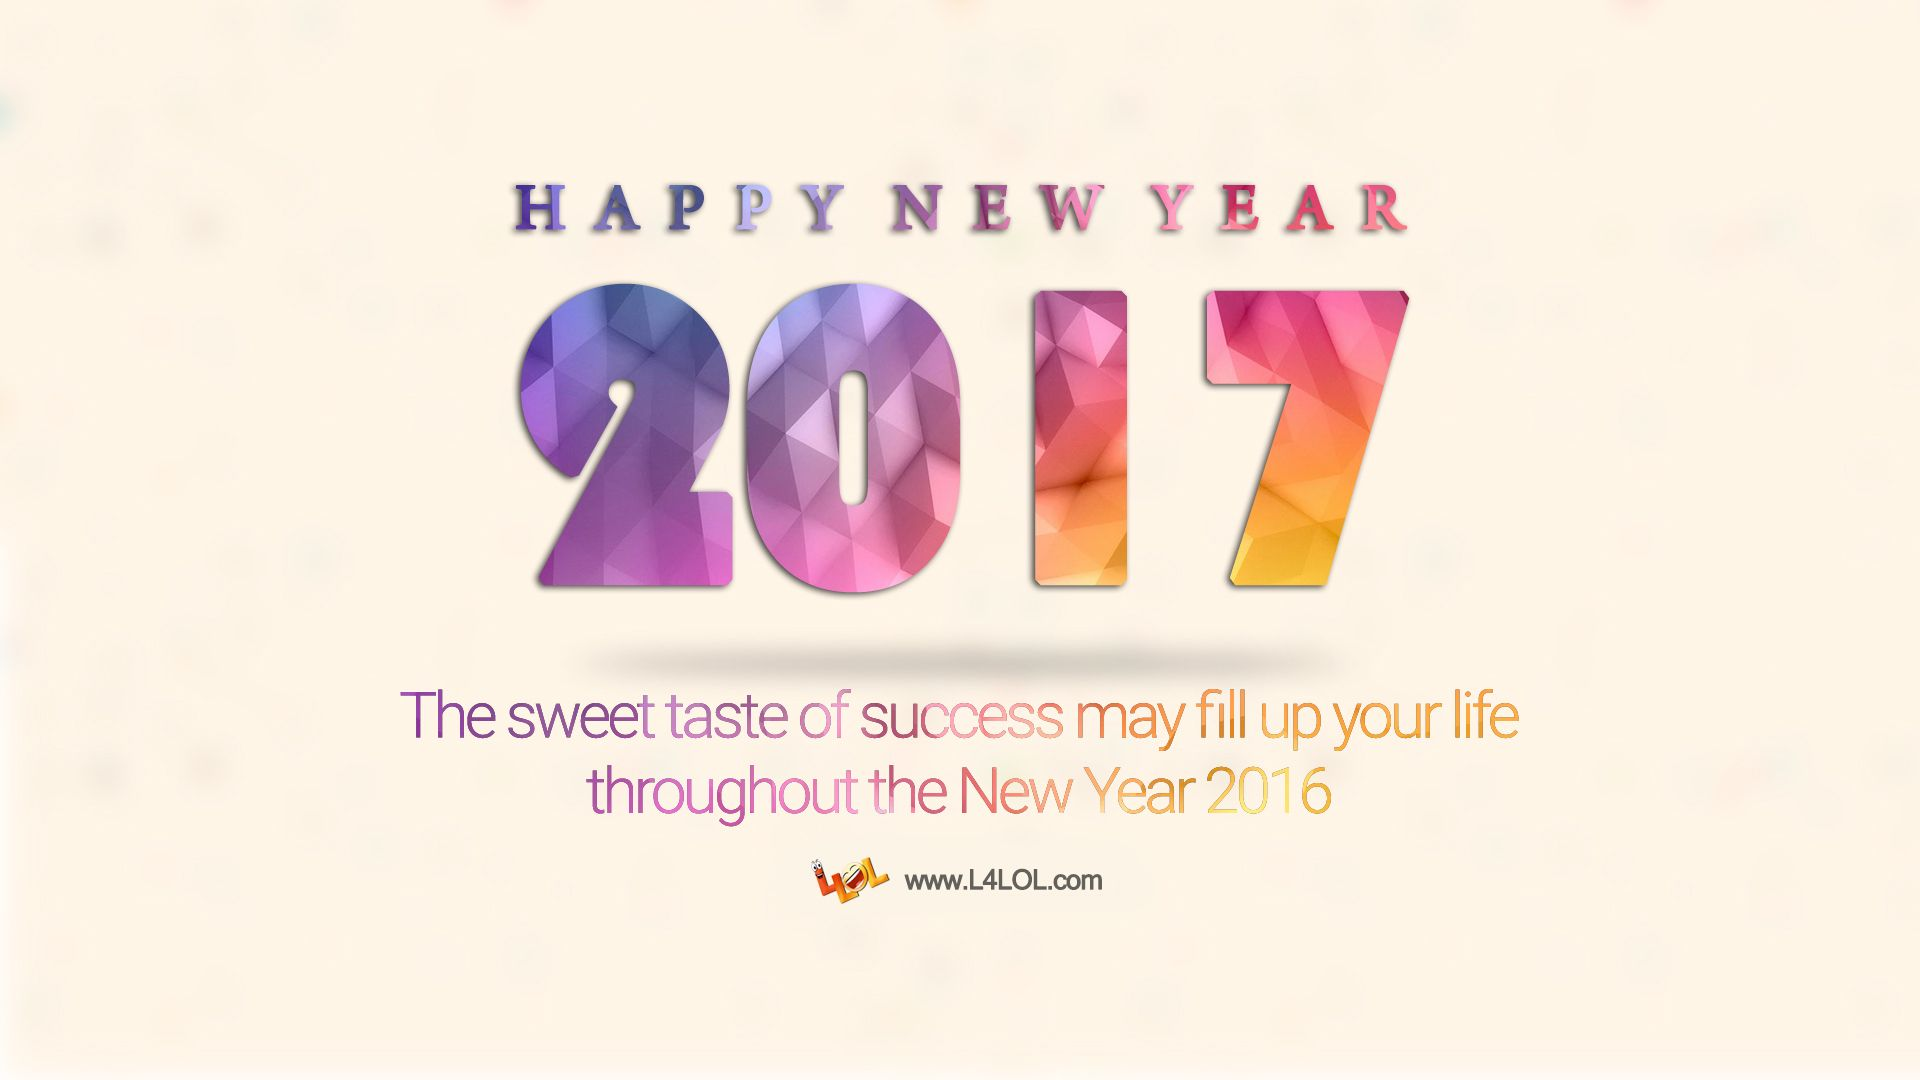 Wallpaper download hd 2017 - Happy New Year Pictures 2017 Http Www Festivalworldz Com